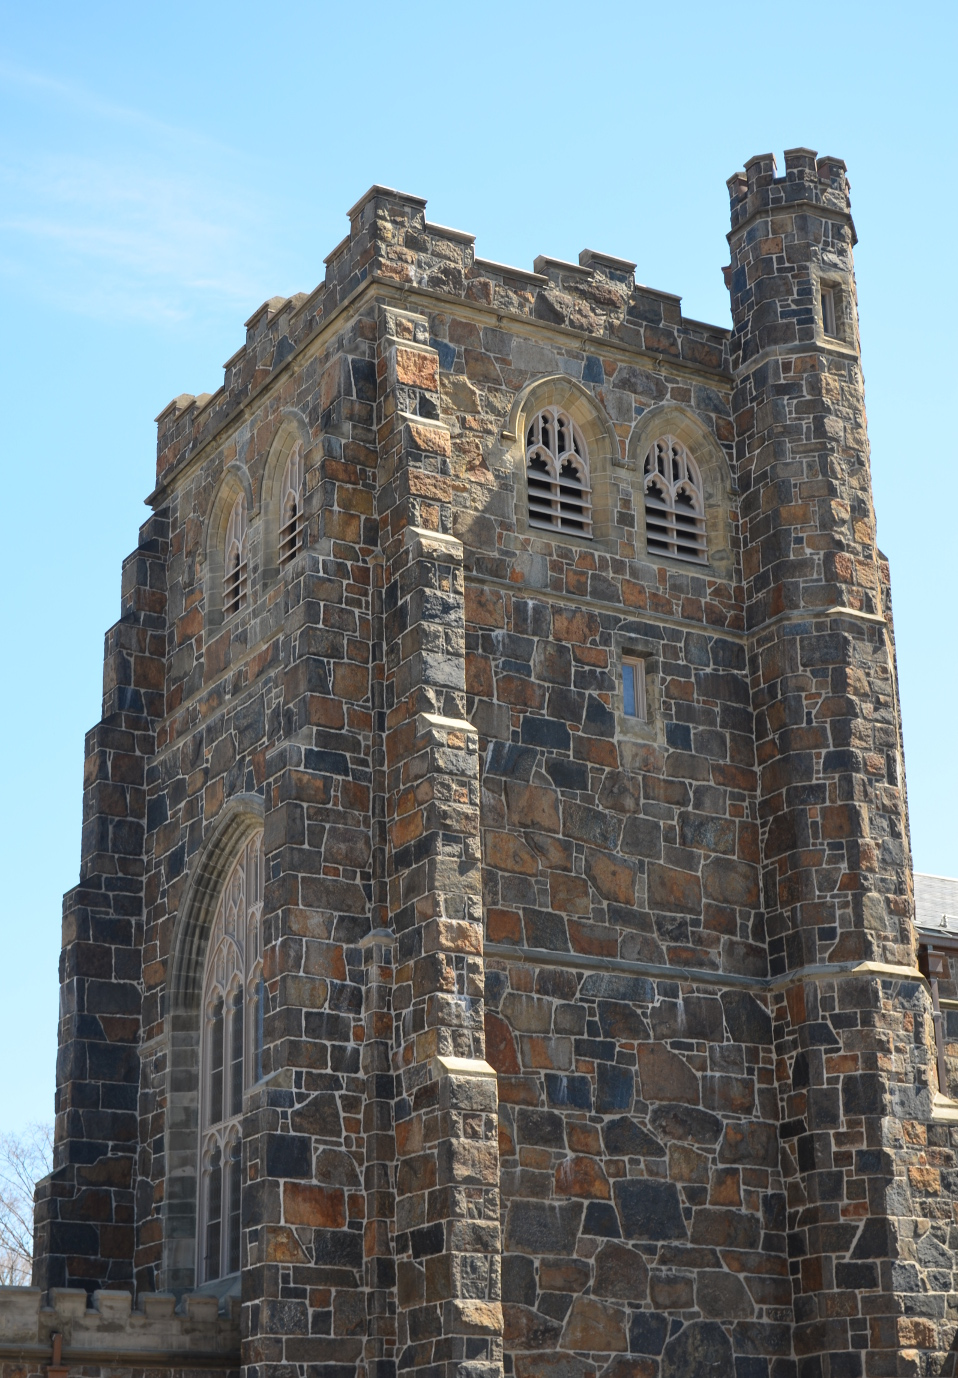 Tower at noon, photo credit:  Ashmont 2014